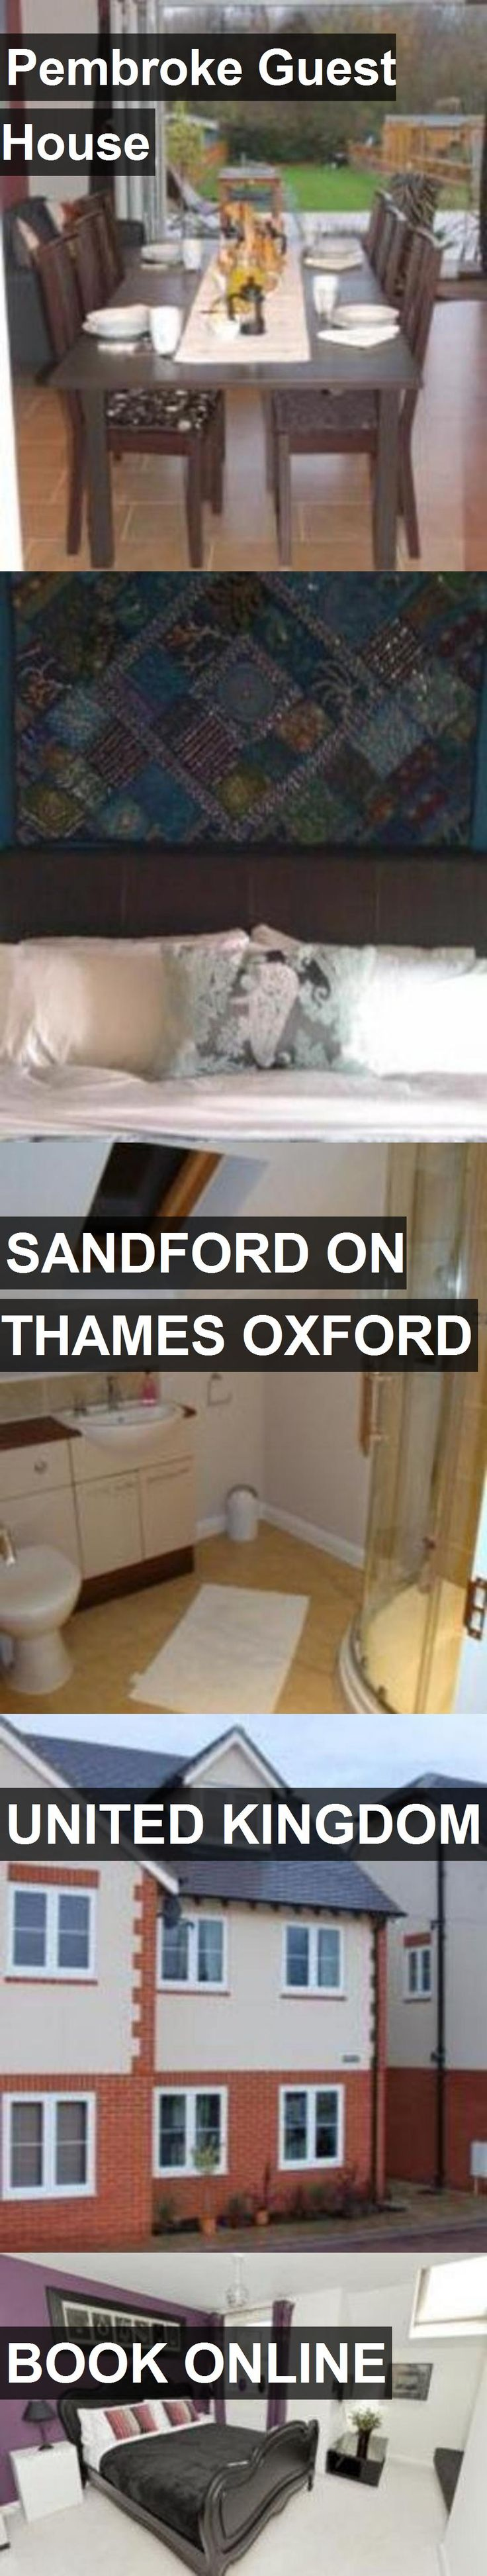 Hotel Pembroke Guest House in Sandford on thames Oxford, United Kingdom. For more information, photos, reviews and best prices please follow the link. #UnitedKingdom #SandfordonthamesOxford #hotel #travel #vacation